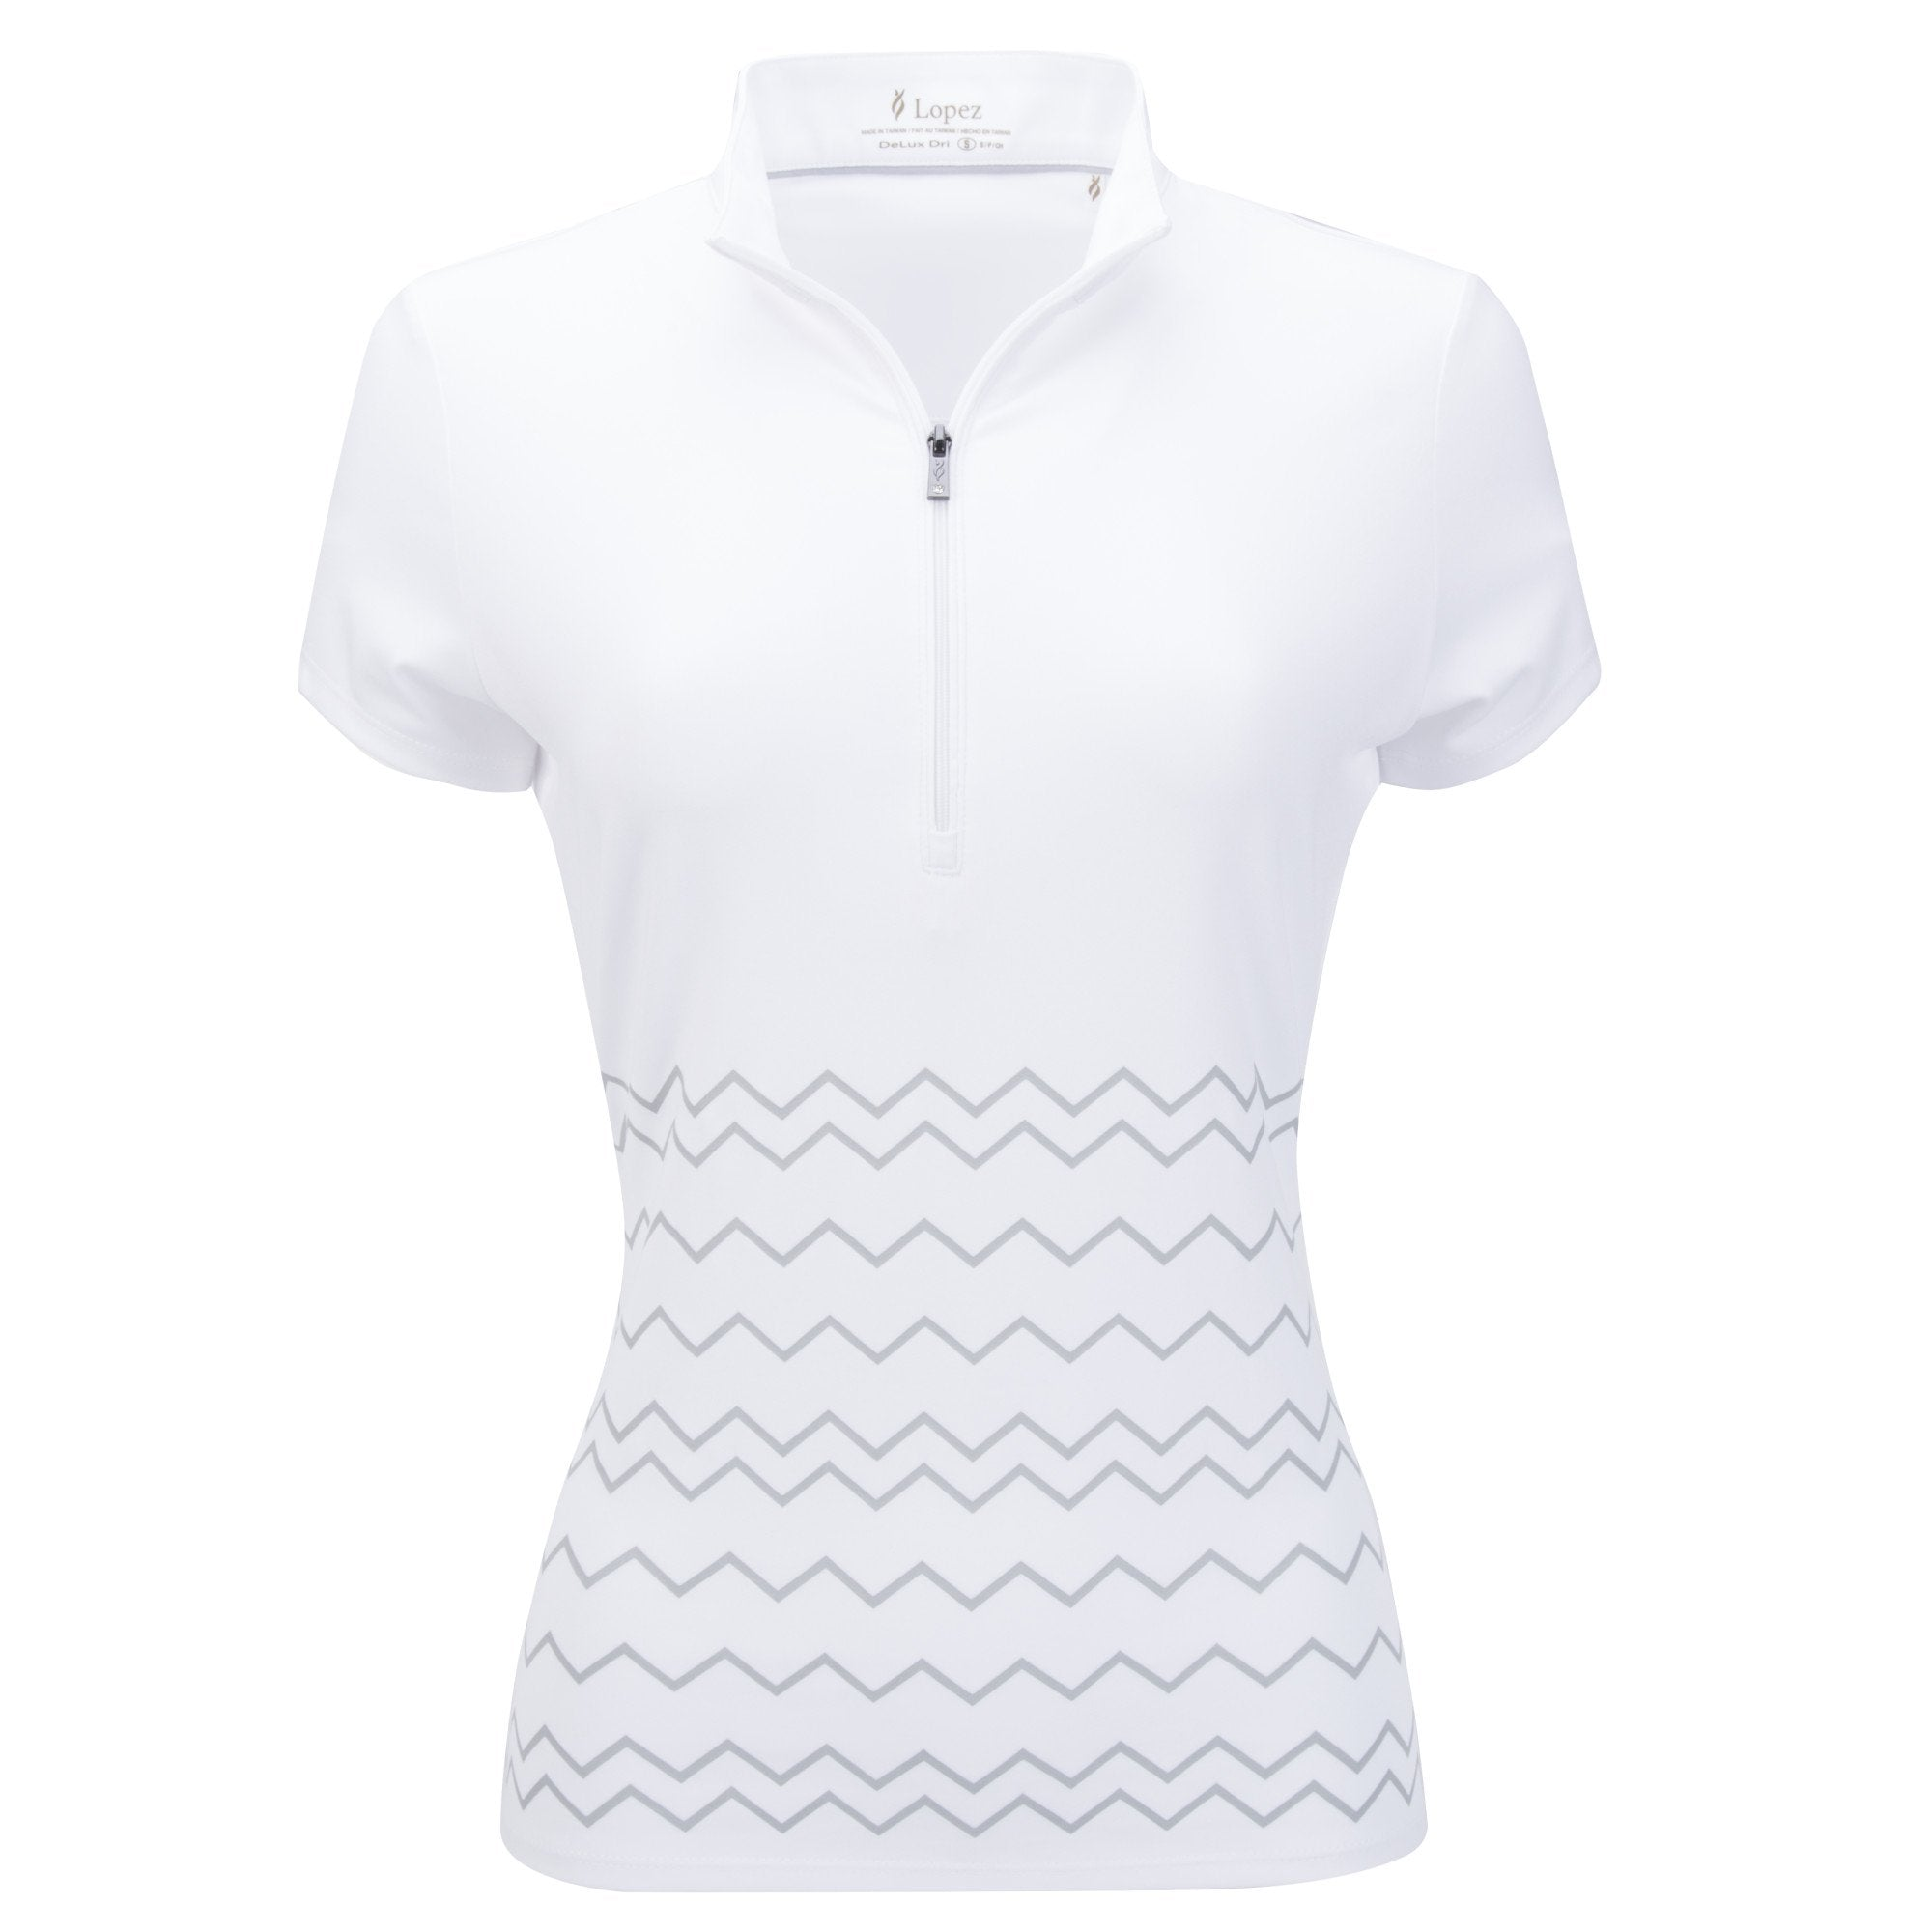 Nancy Lopez Warrior Short Sleeve Polo Plus White/Silver